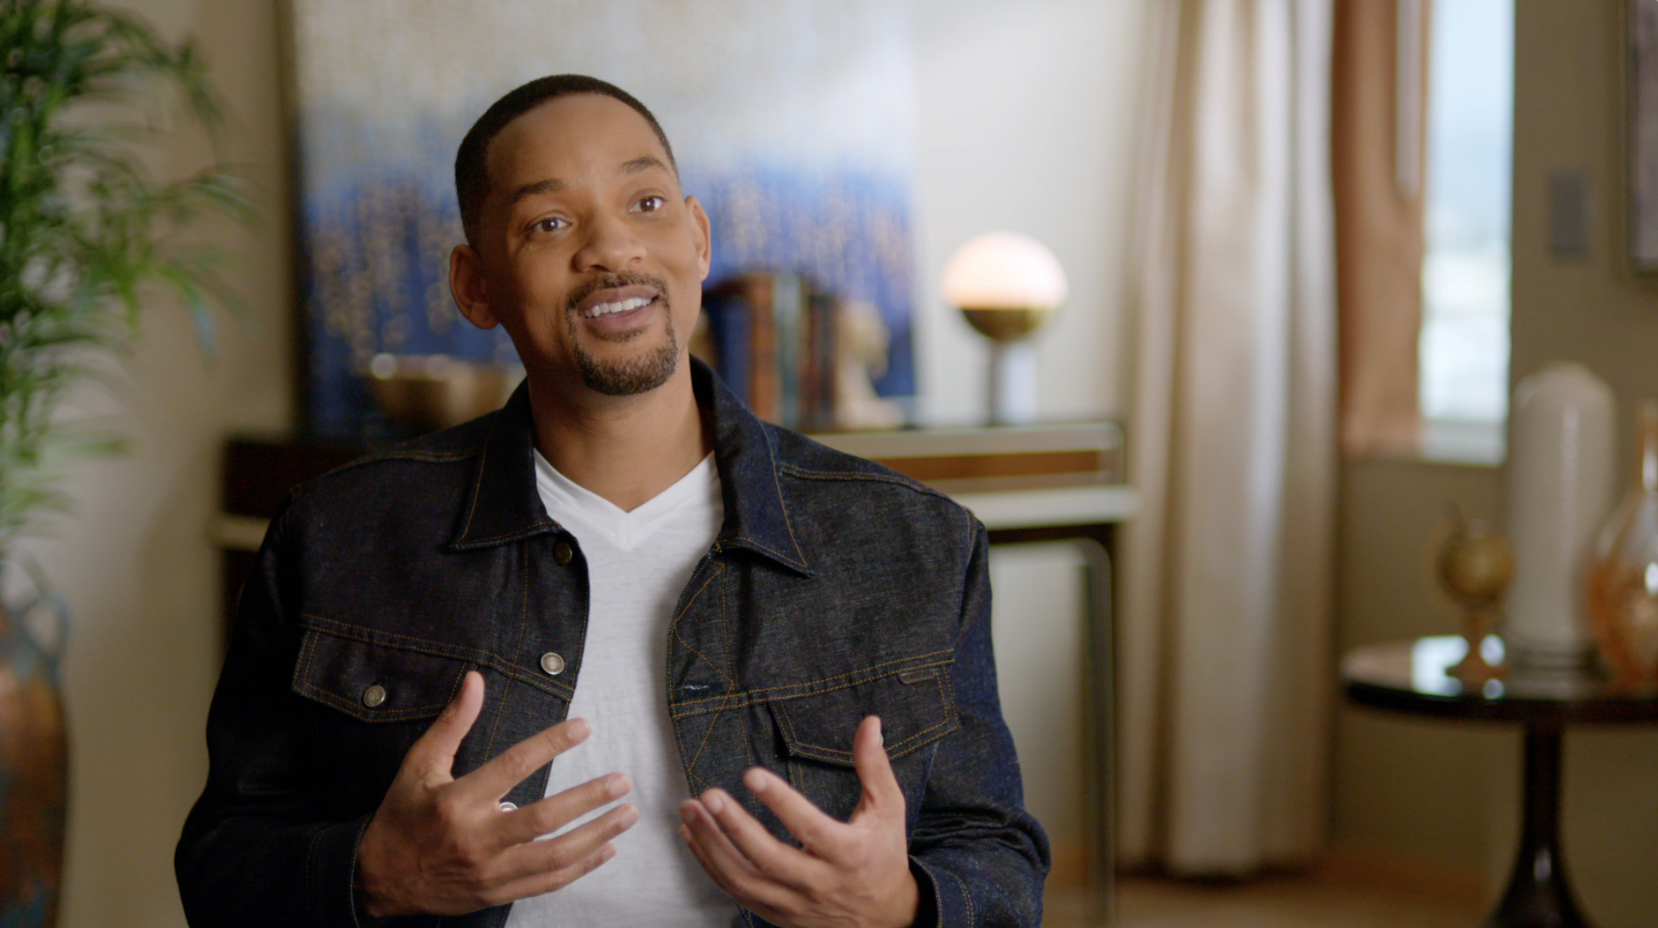 Will Smith On Playing His Younger Self In Gemini Man And The Advice He Wouldn T Give Him Gemini Man Movies In Theaters Now Gemini